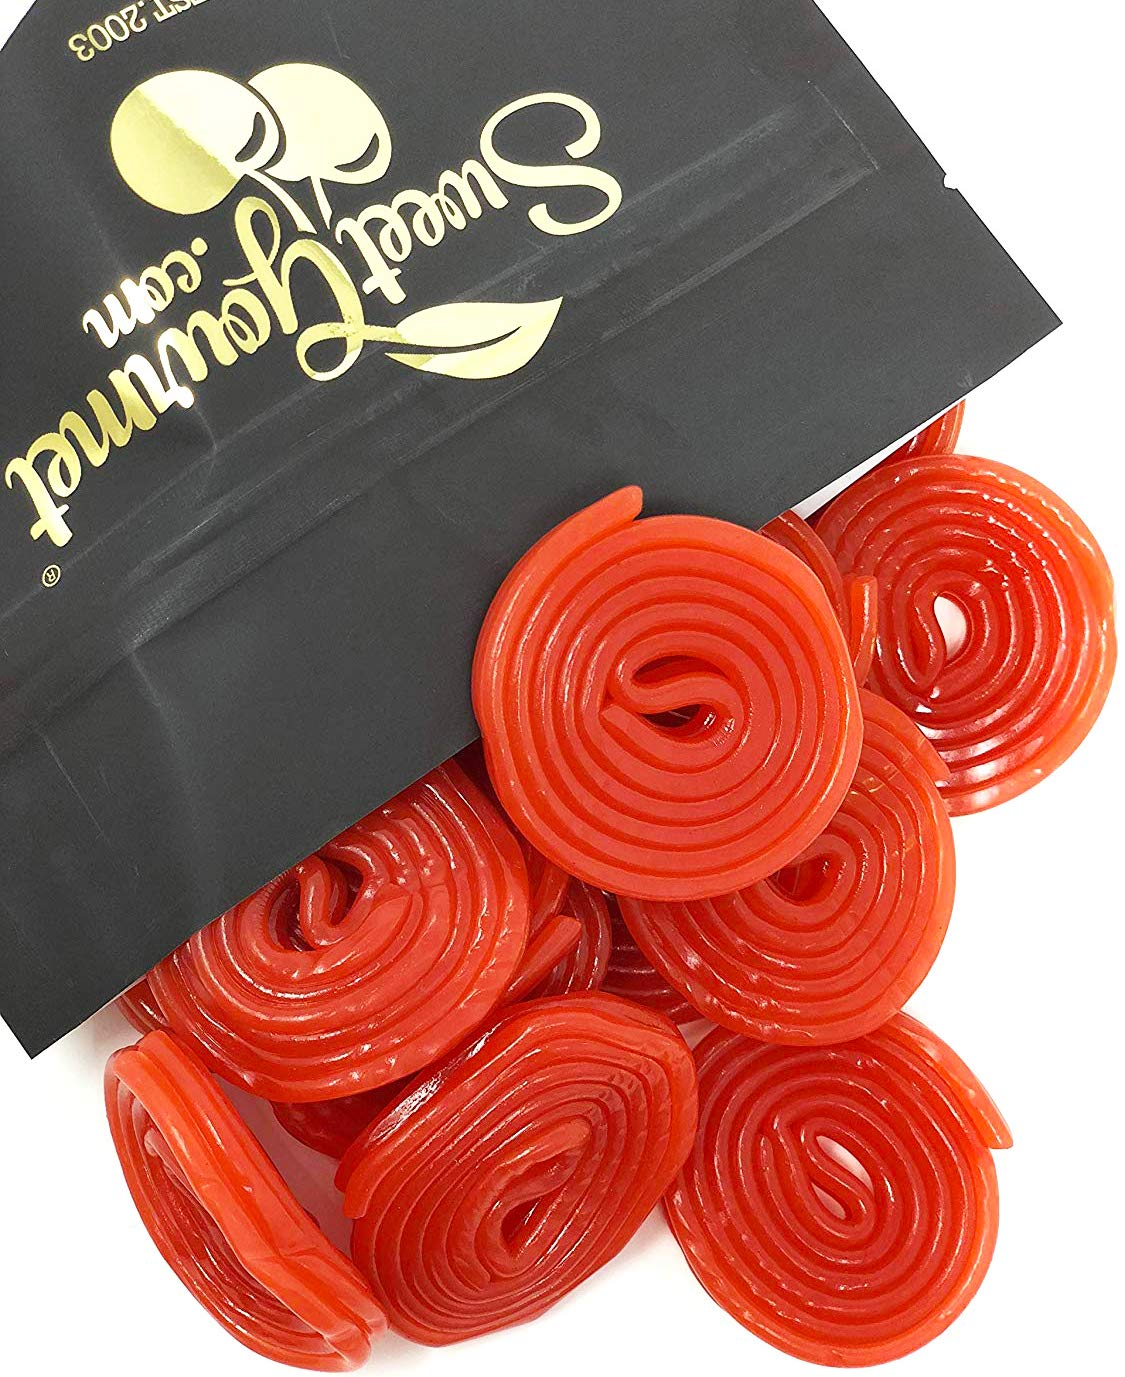 Italian Strawberry Licorice Wheels | Bulk Candy | Natural Colors and Flavors, GMO Free | 2 pounds